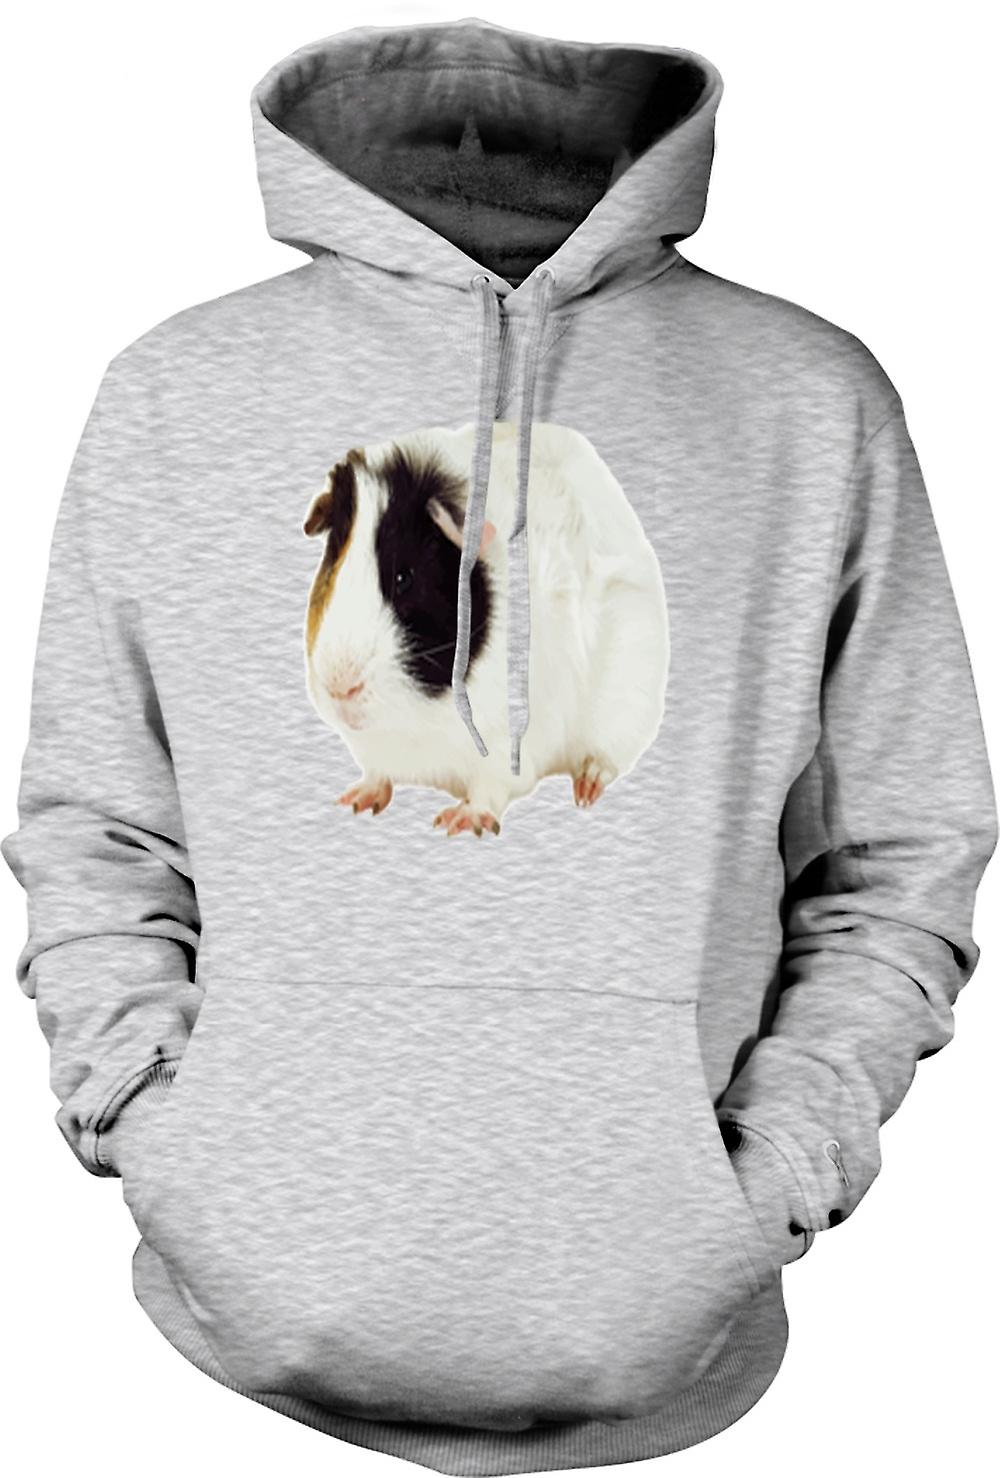 Mens Hoodie - Guinea Pig White and Brown Women